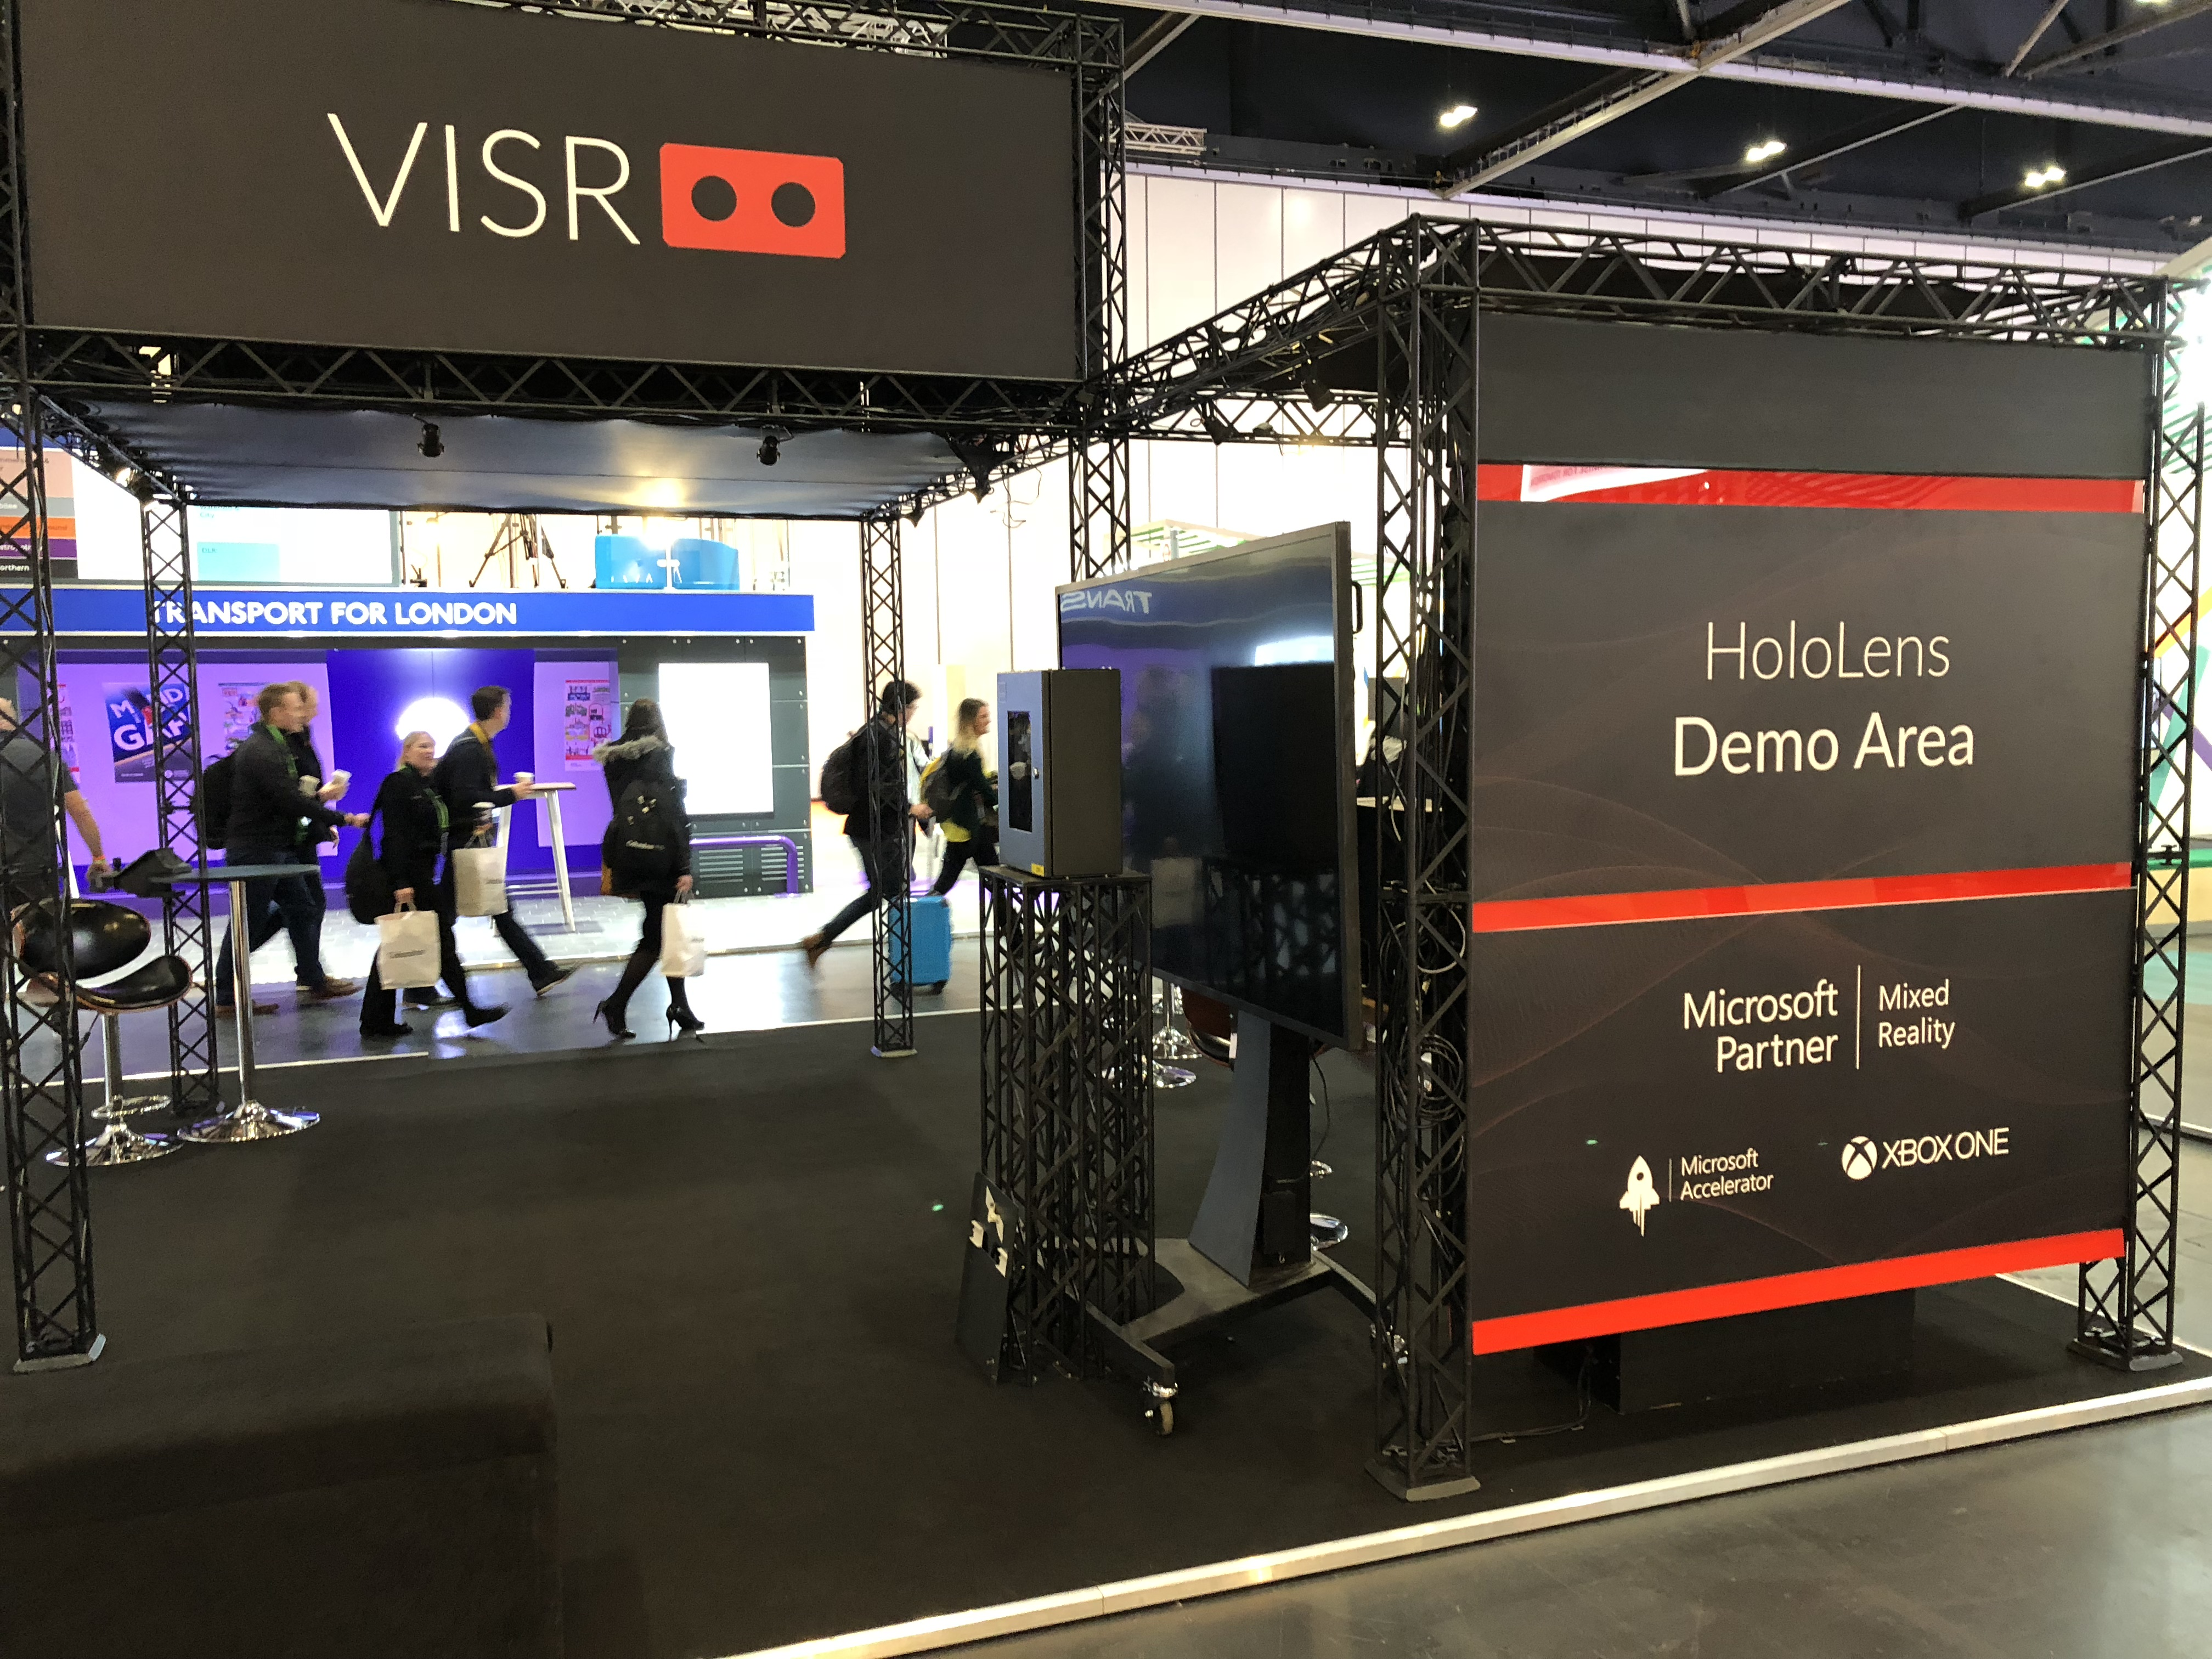 VISR, a Microsoft partner that specialises in Mixed Reality